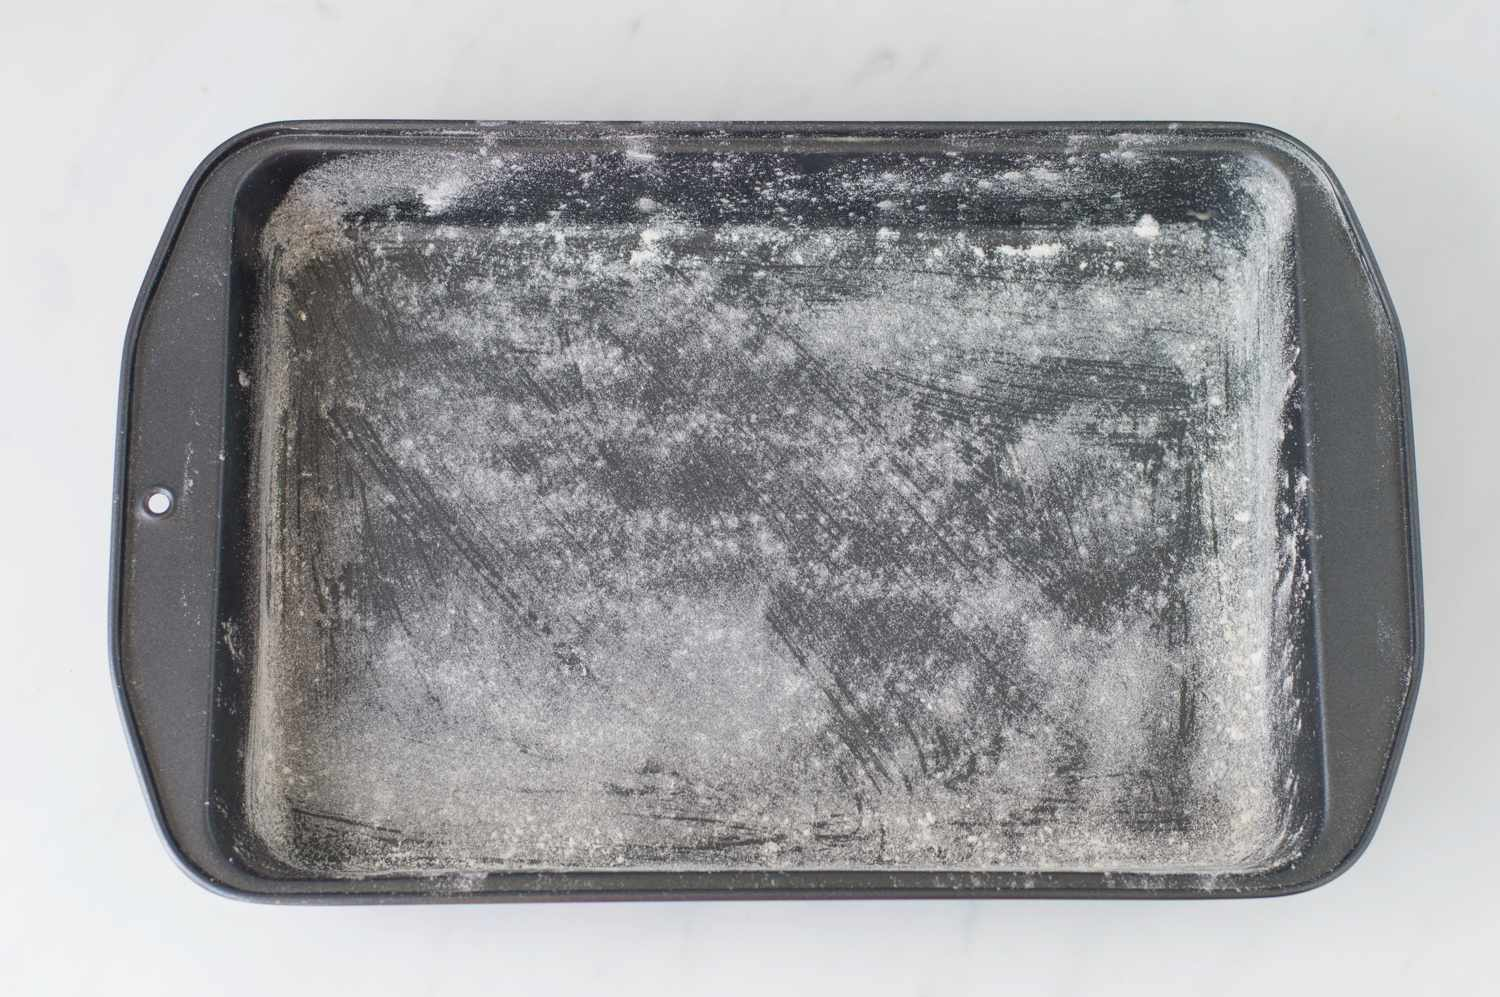 A 9 x 13-inch baking pan greased and floured